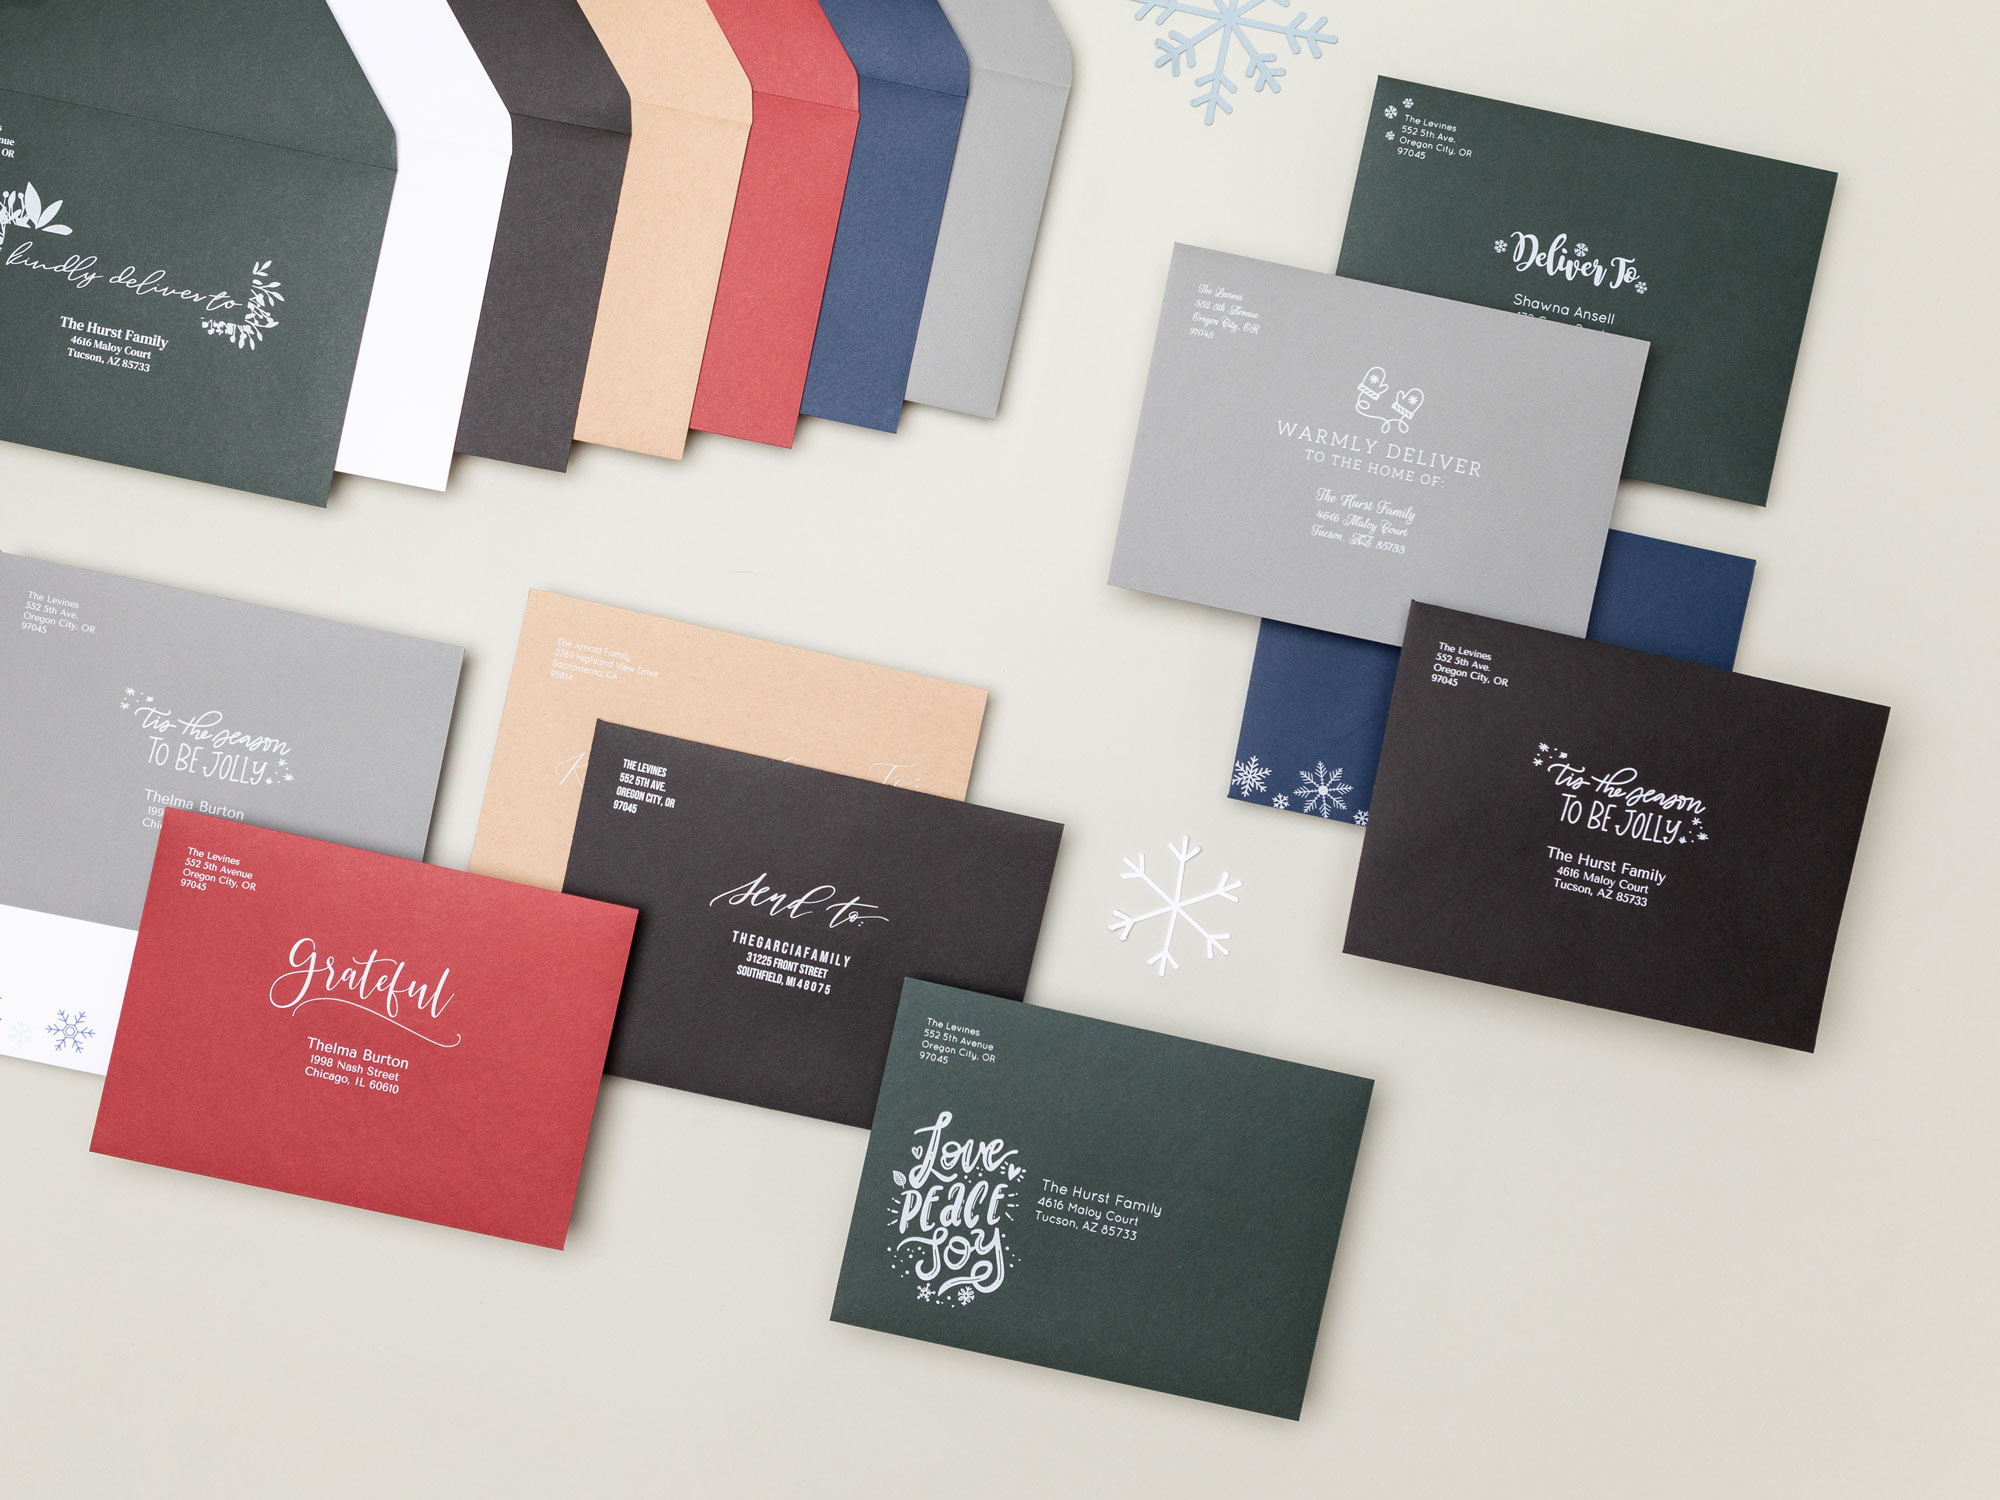 Euro flap envelopes in several colors with white ink printing for holiday cards